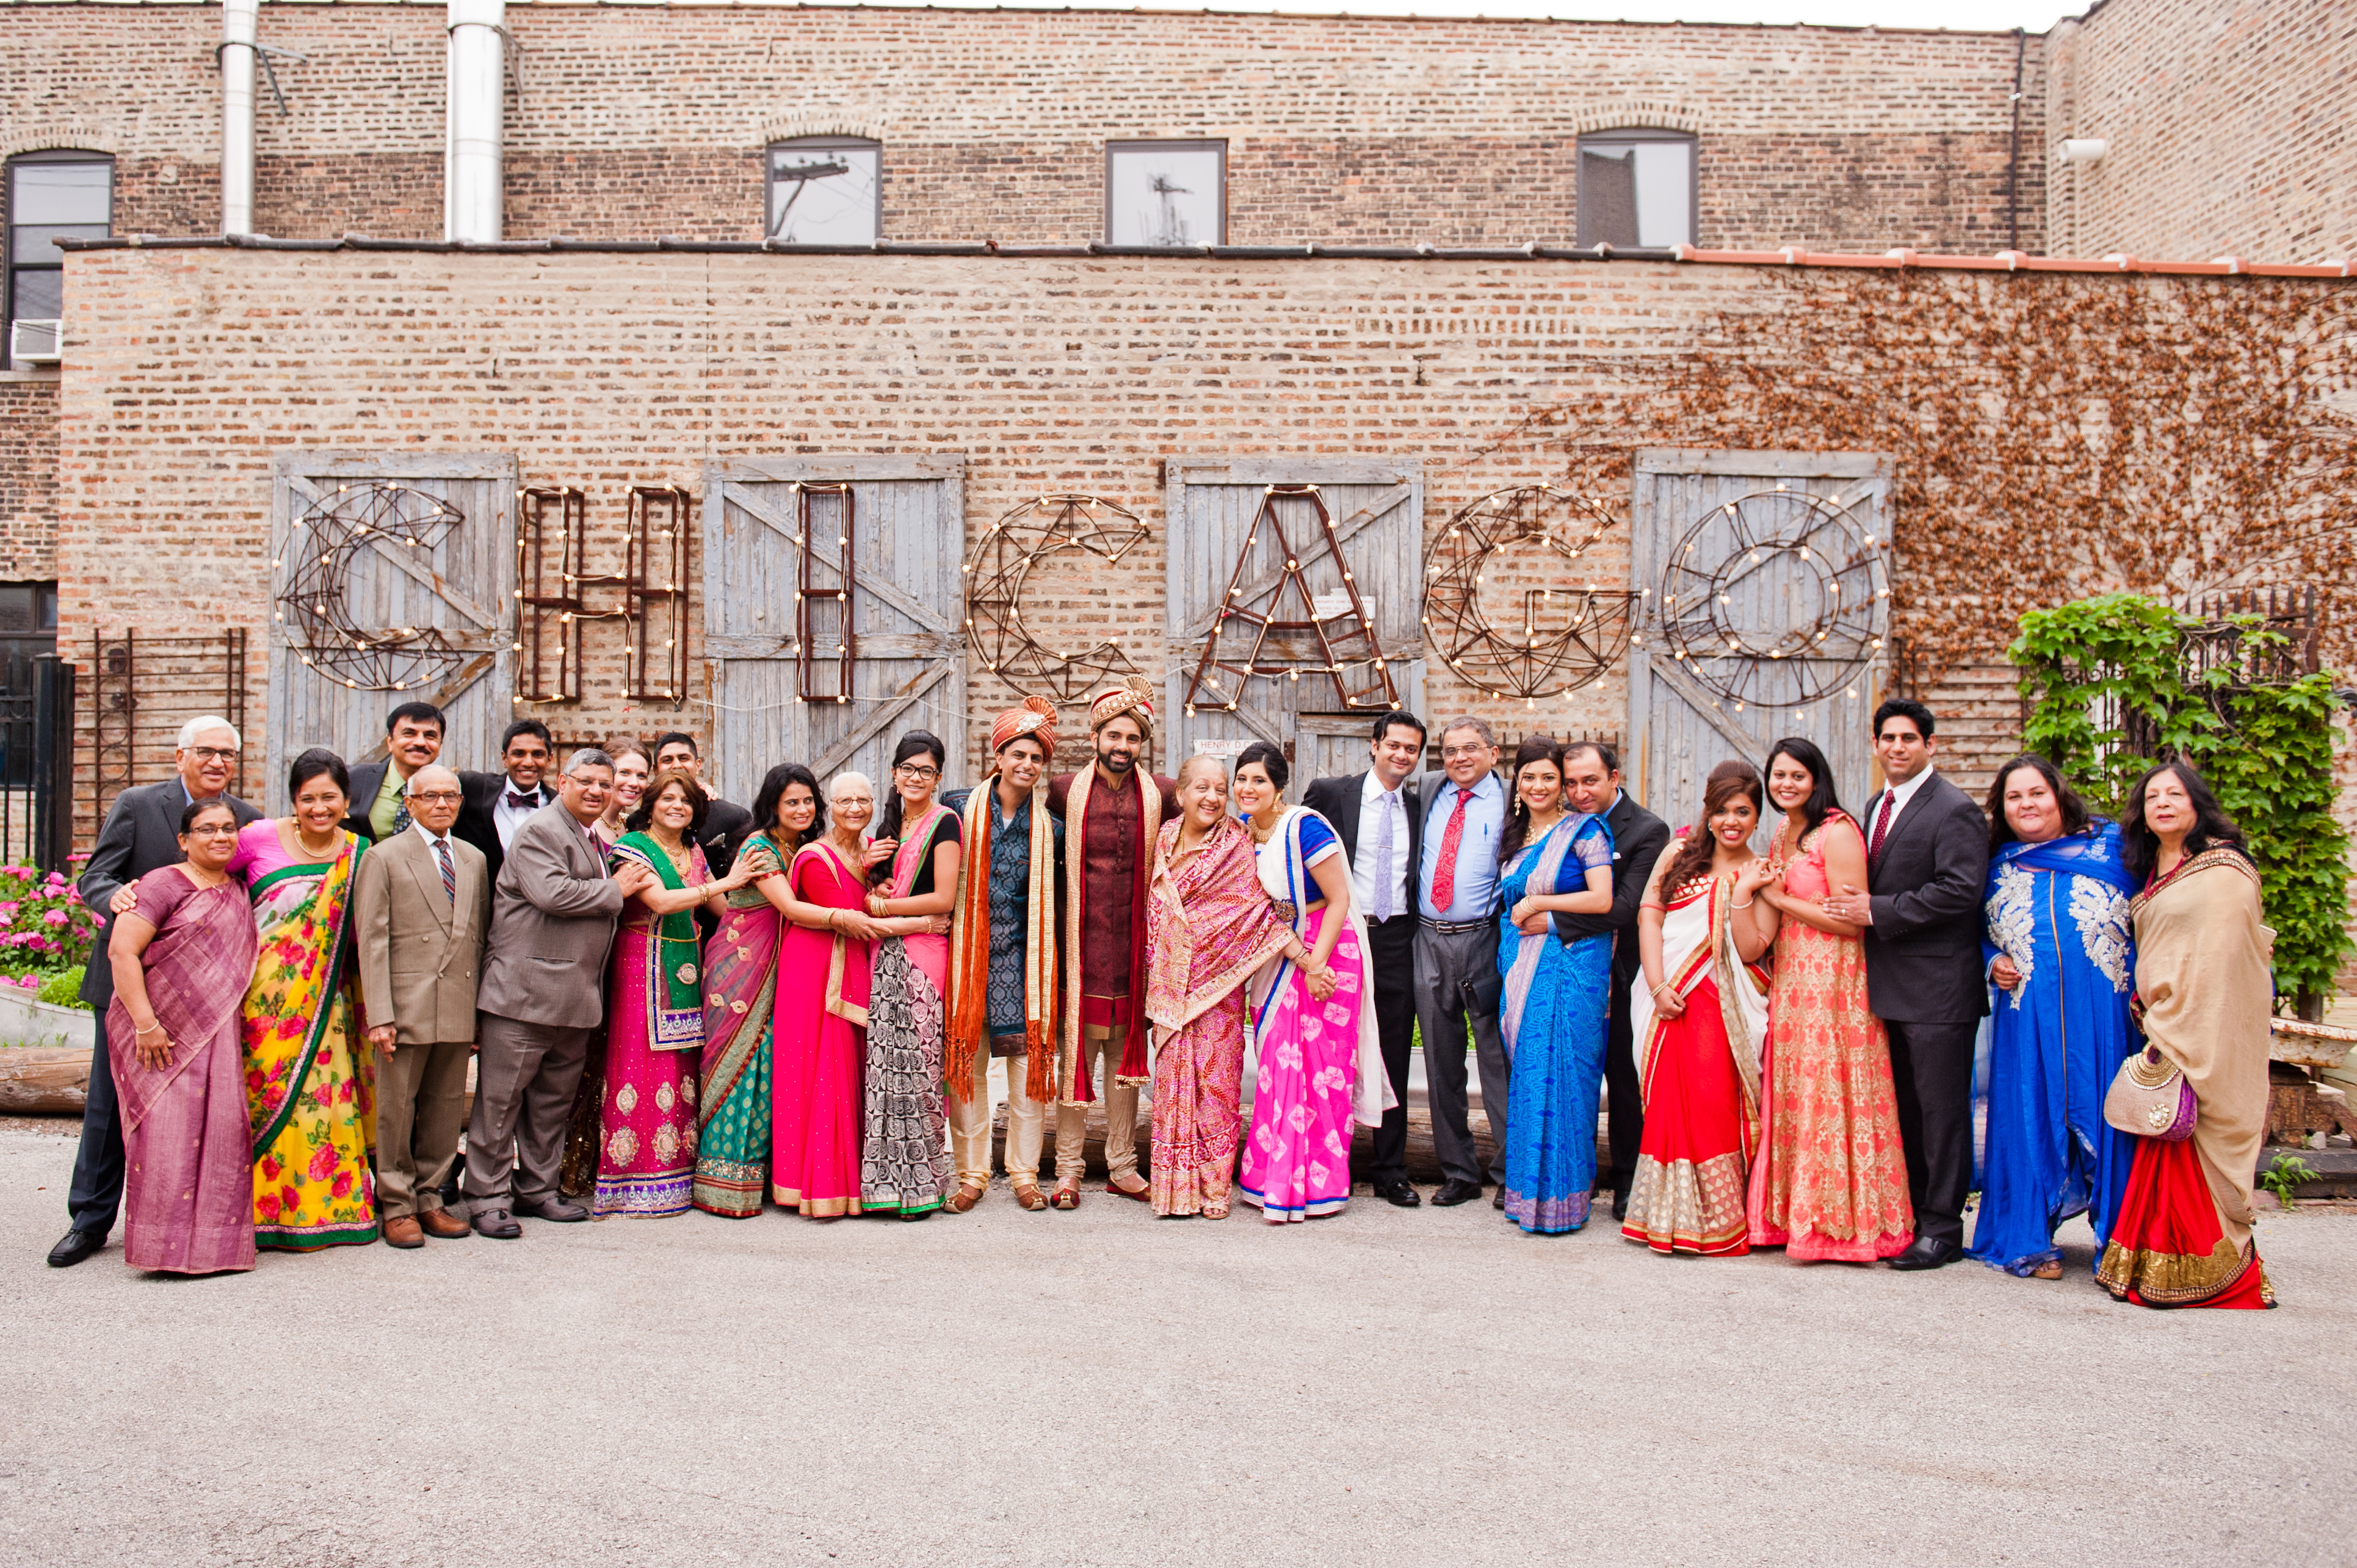 The Big Fat Indian Wedding! Friends and family celebrate.#Gaypride